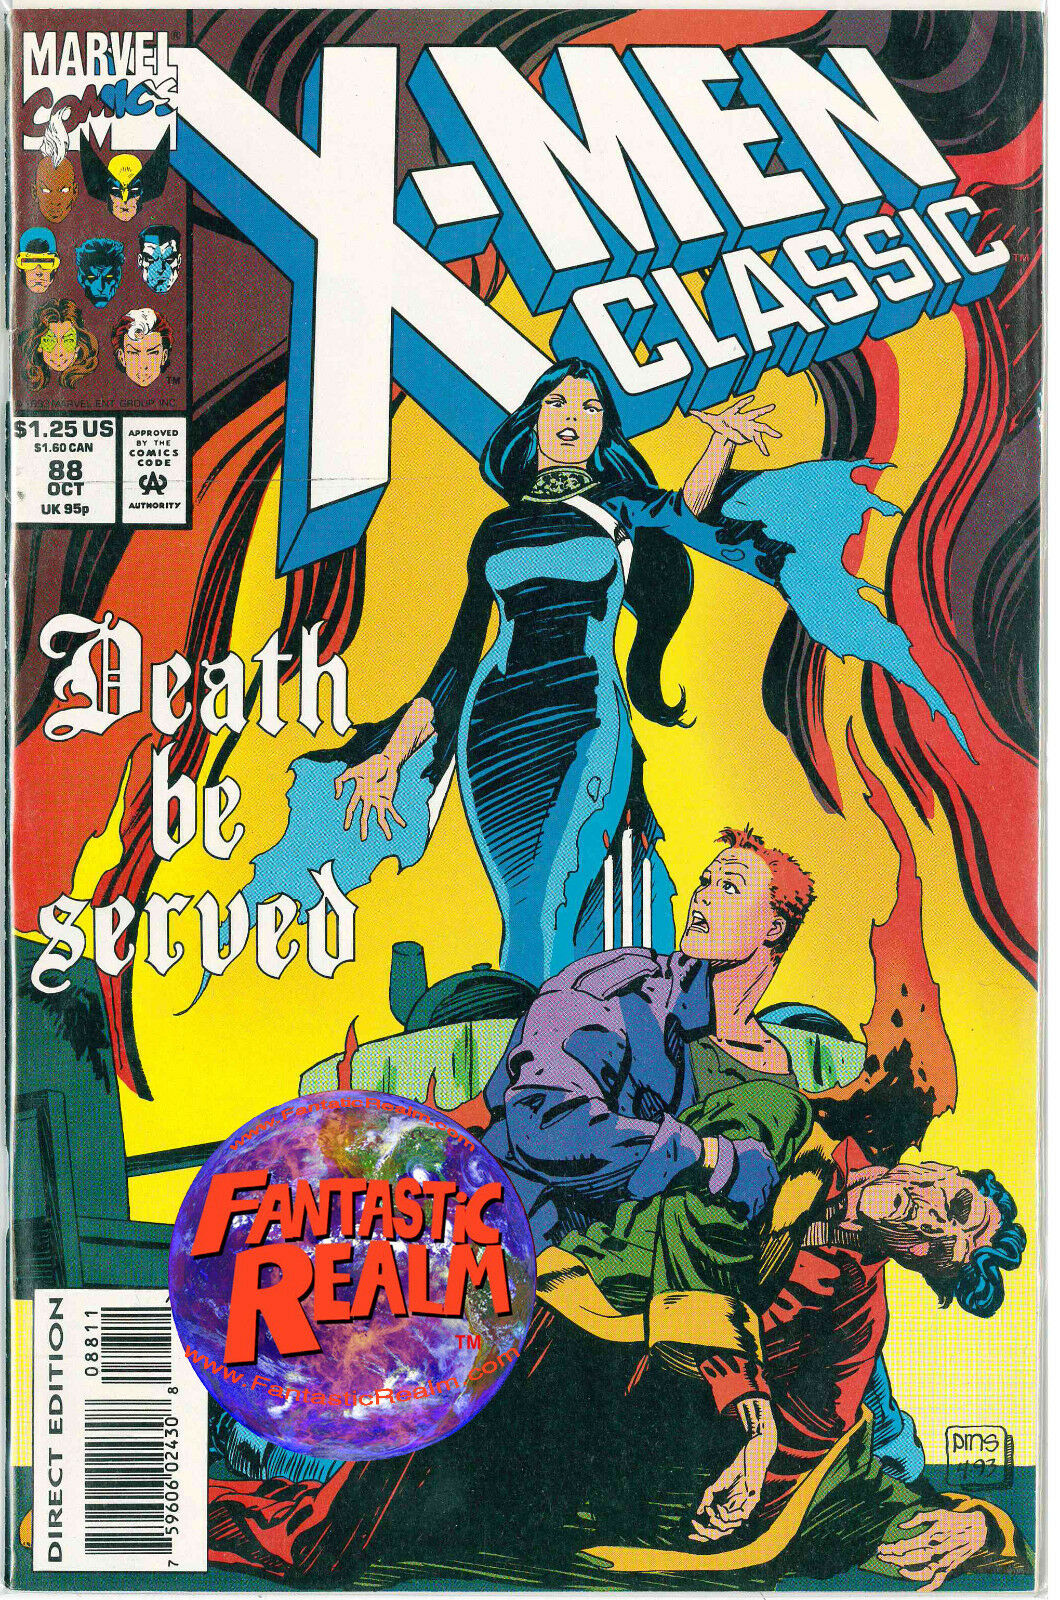 X-MEN CLASSIC #88 (OCT 1993) MARVEL COMICS